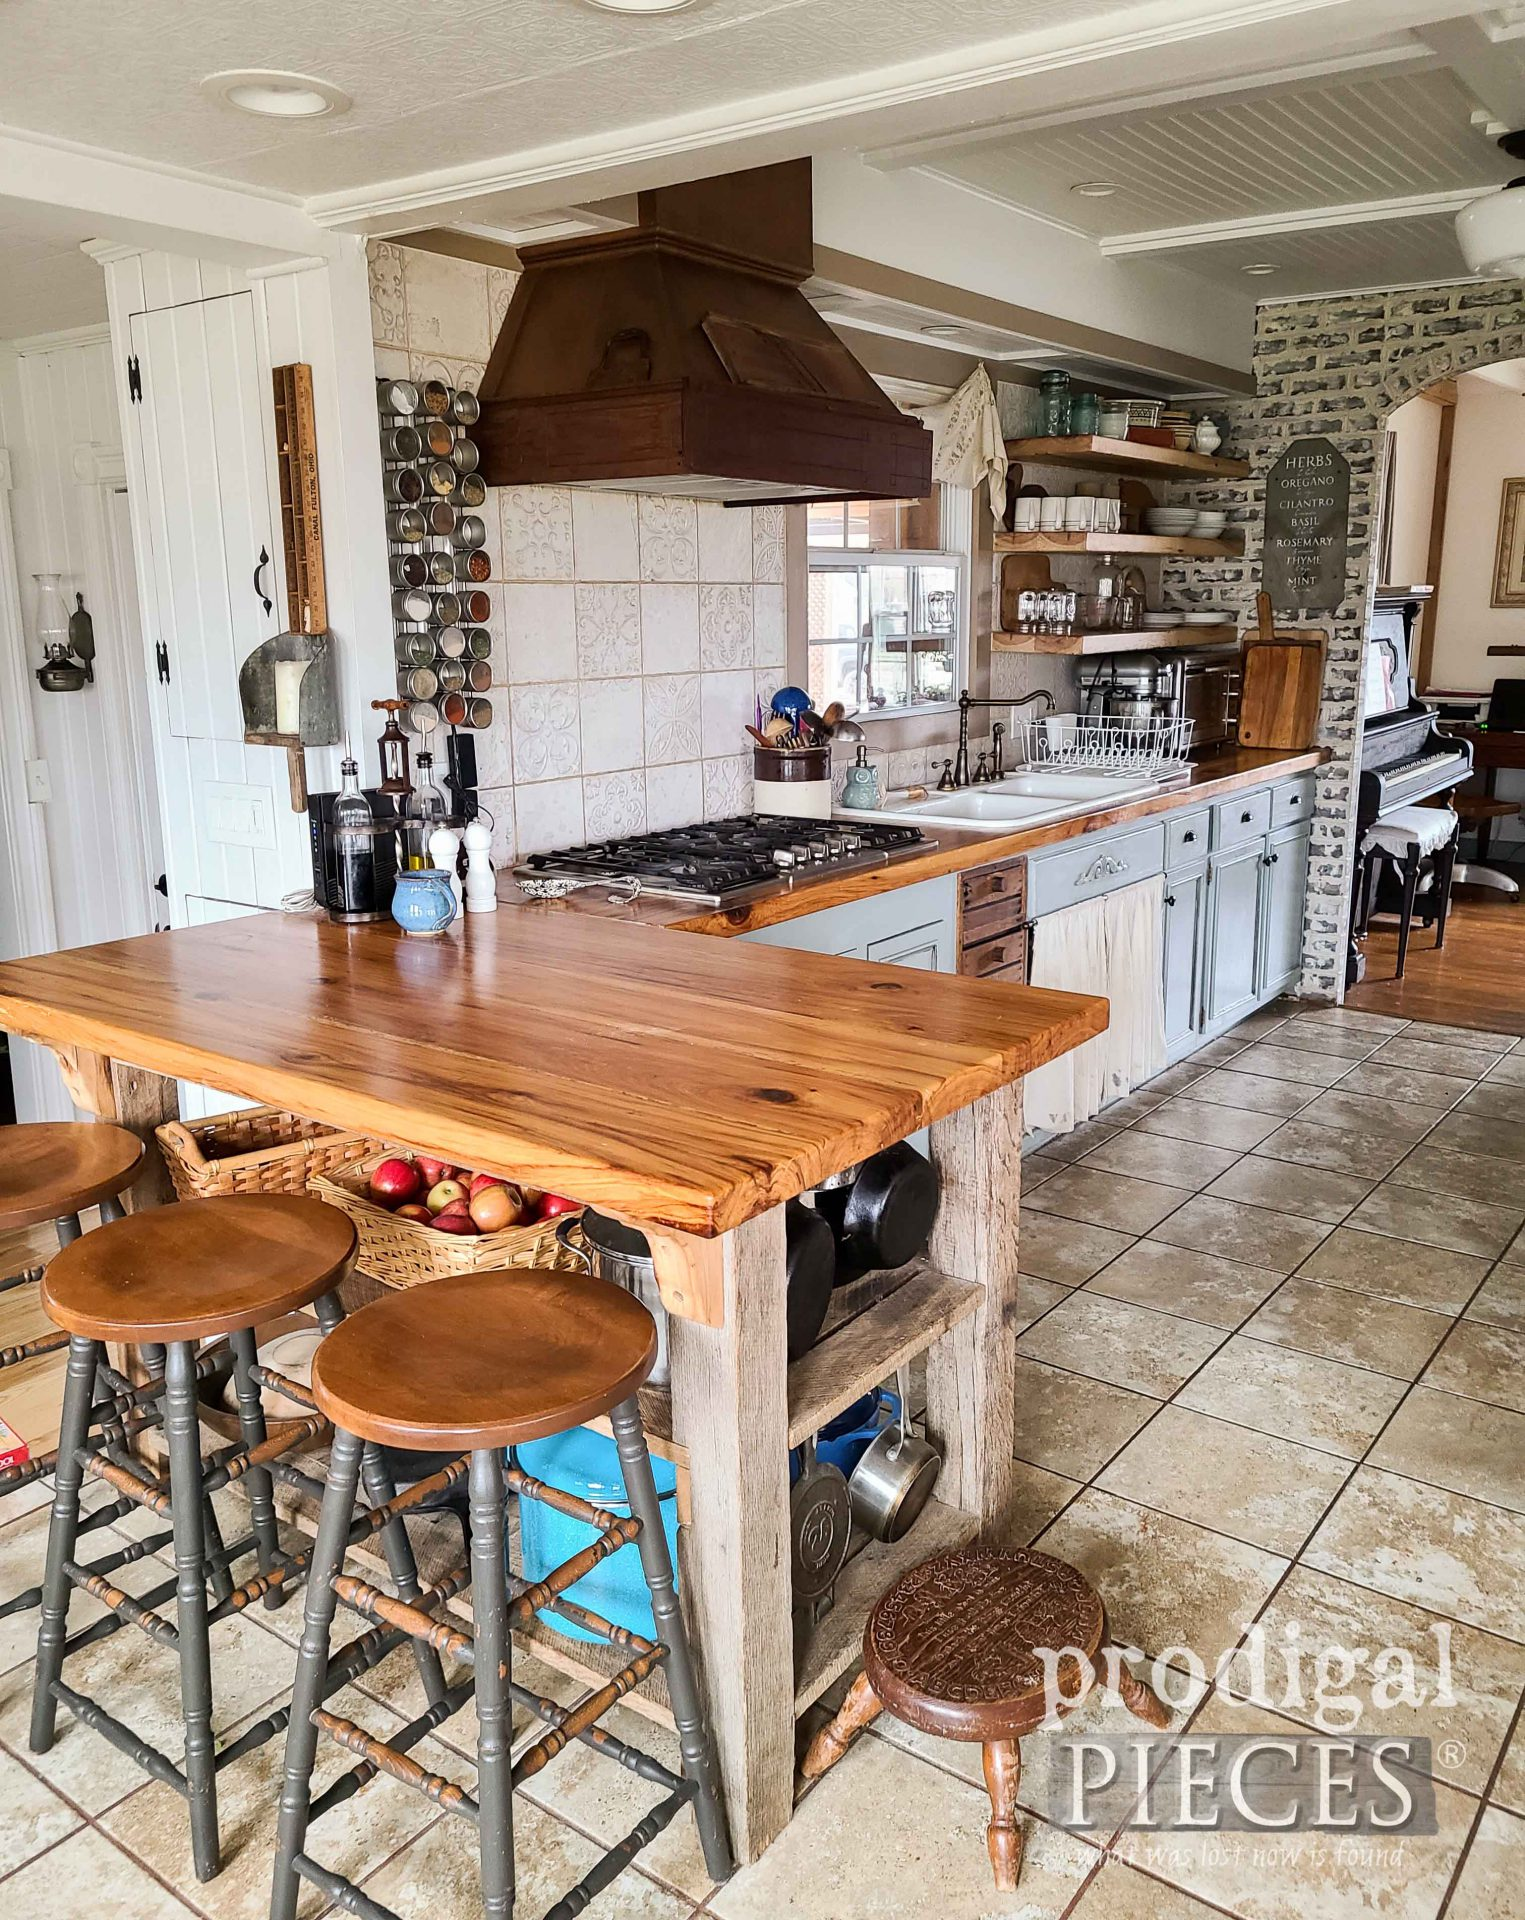 Farmhouse Kitchen with Reclaimed Wood Kitchen Counters by Larissa of Prodigal Pieces | prodigalpieces.com #prodigalpieces #farmhouse #kitchen #diy #home